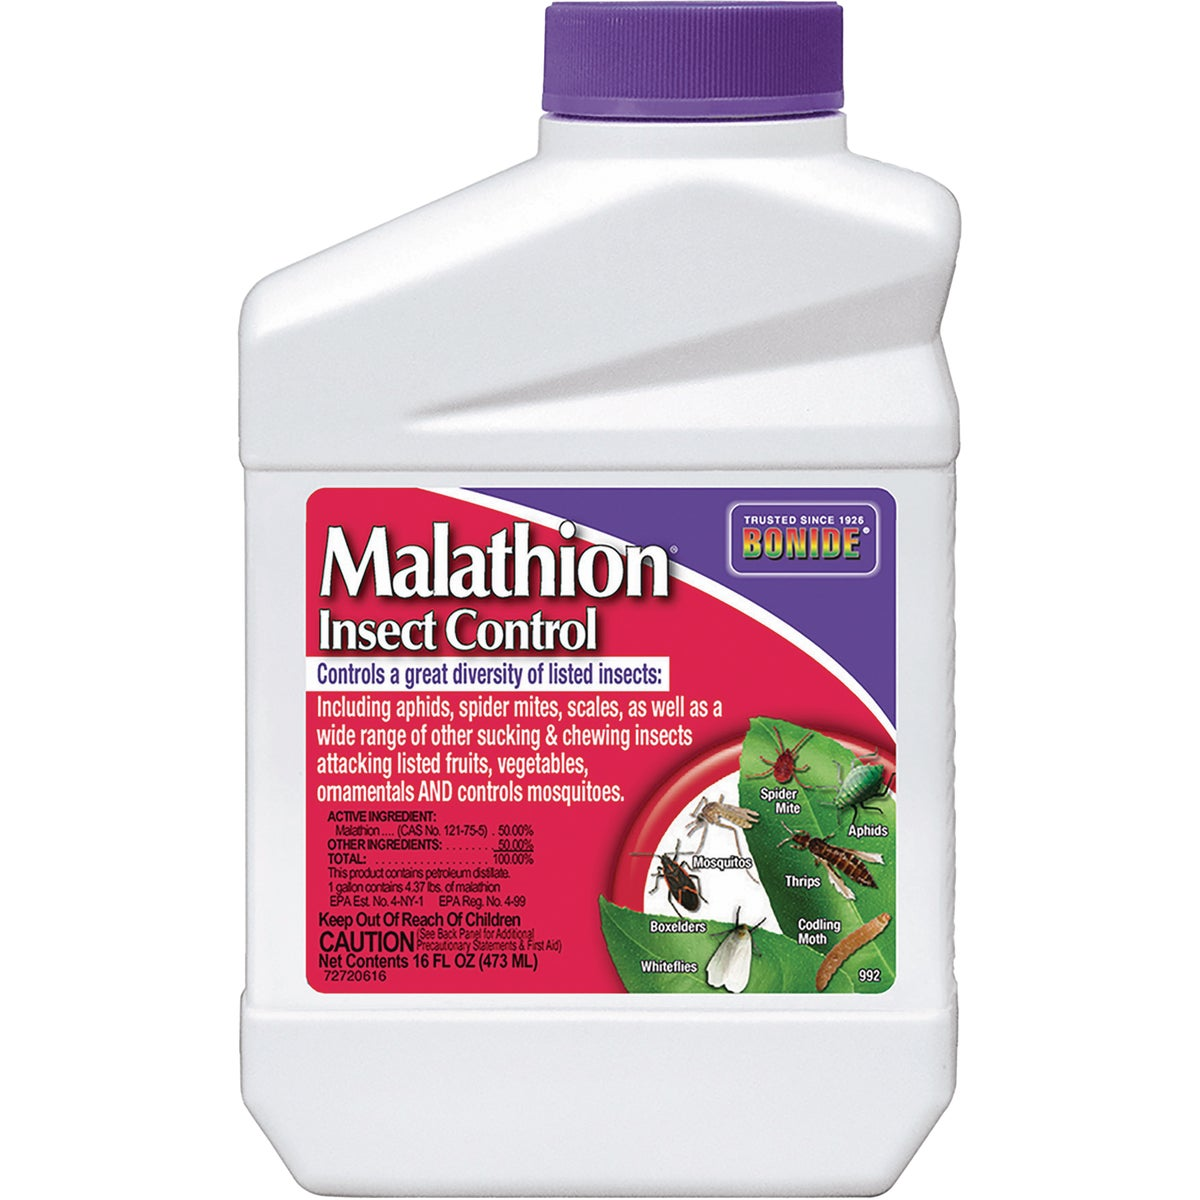 PT CONC MALATHION SPRAY - 992 by Bonide